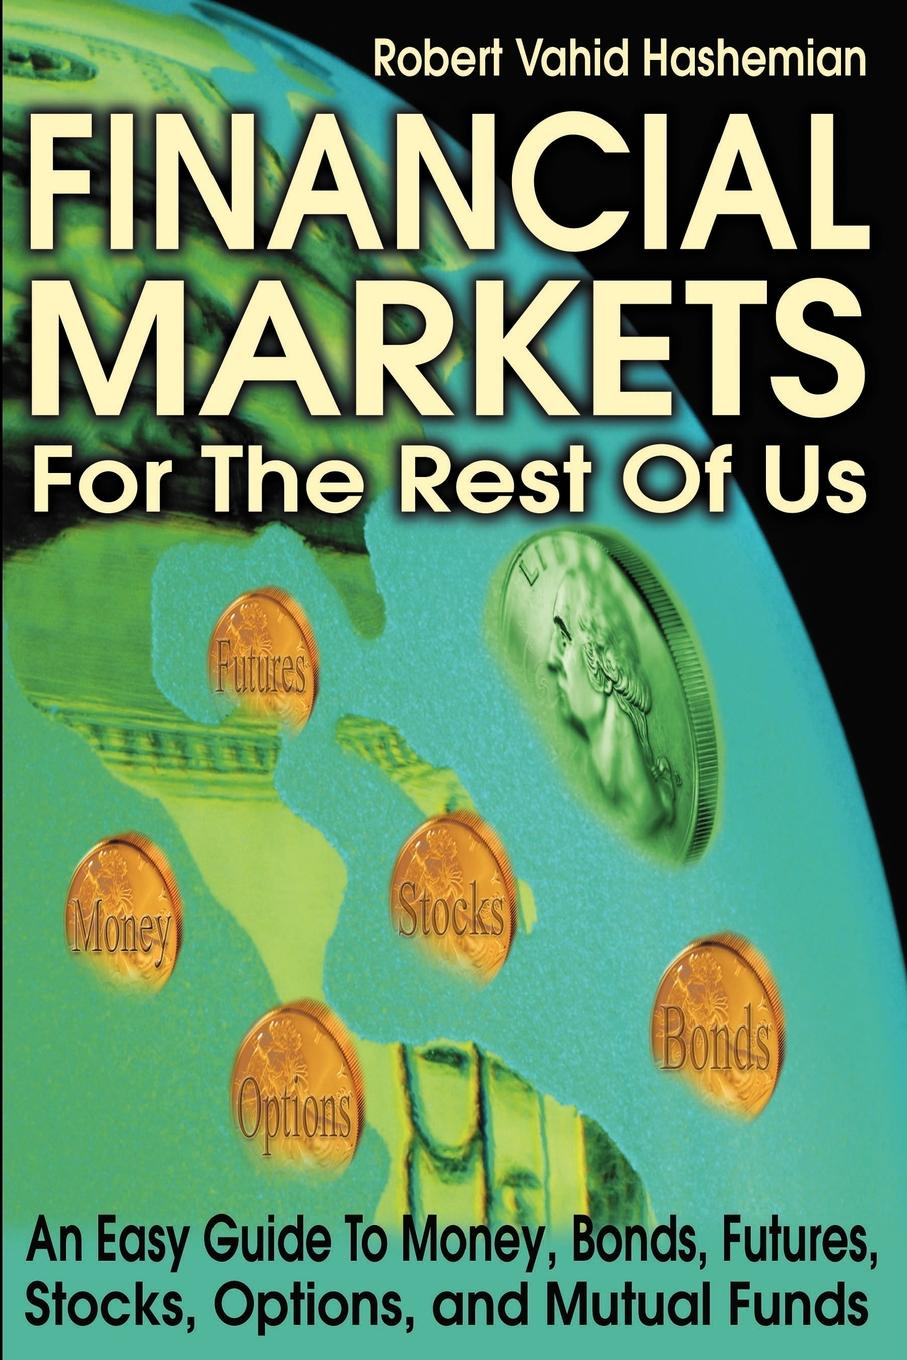 Robert Vahid Hashemian Financial Markets for the Rest of Us. An Easy Guide to Money, Bonds, Futures, Stocks, Options, and Mutual Funds gordon peery f the post reform guide to derivatives and futures isbn 9781118205402